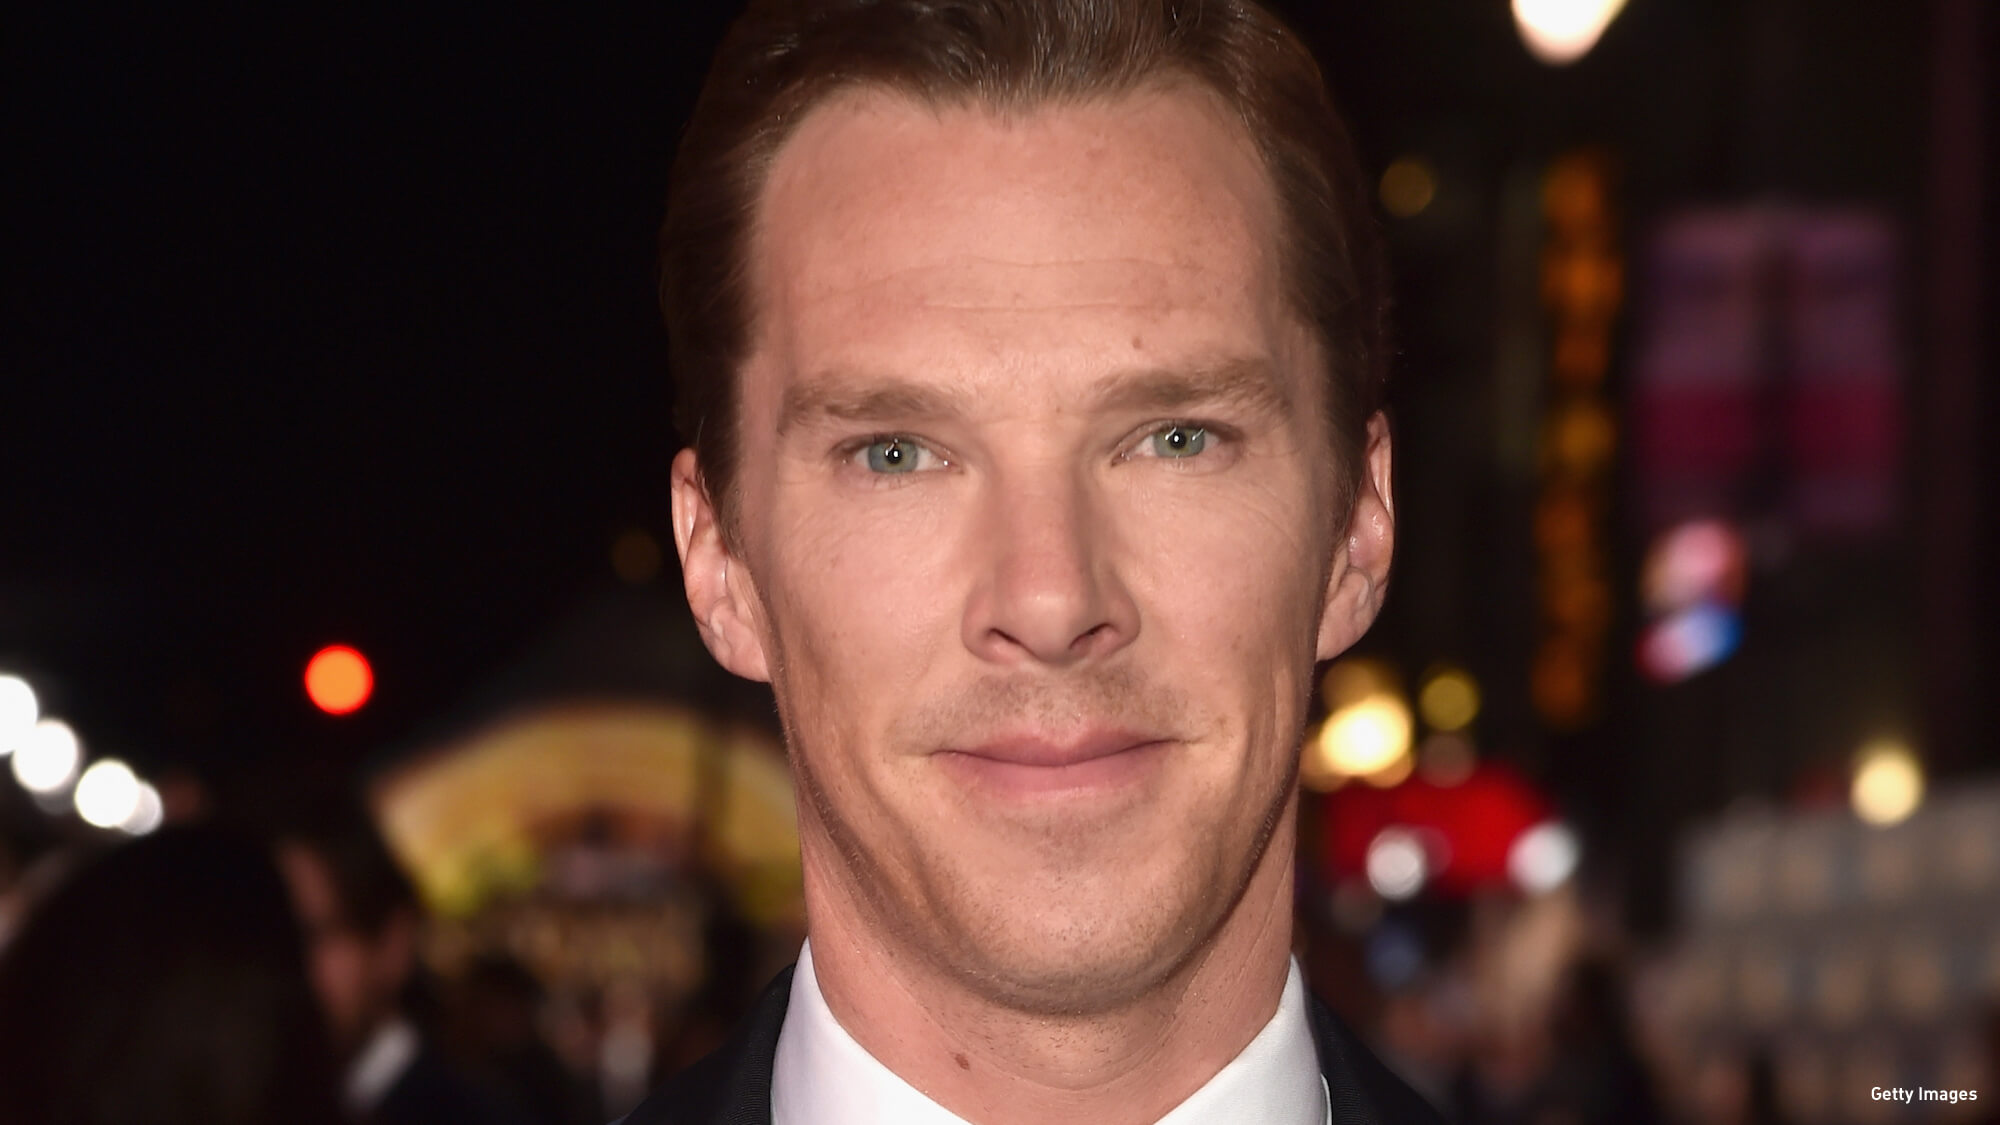 WATCH: Benedict Cumberbatch Performs THAT Speech From 'Hamlet'